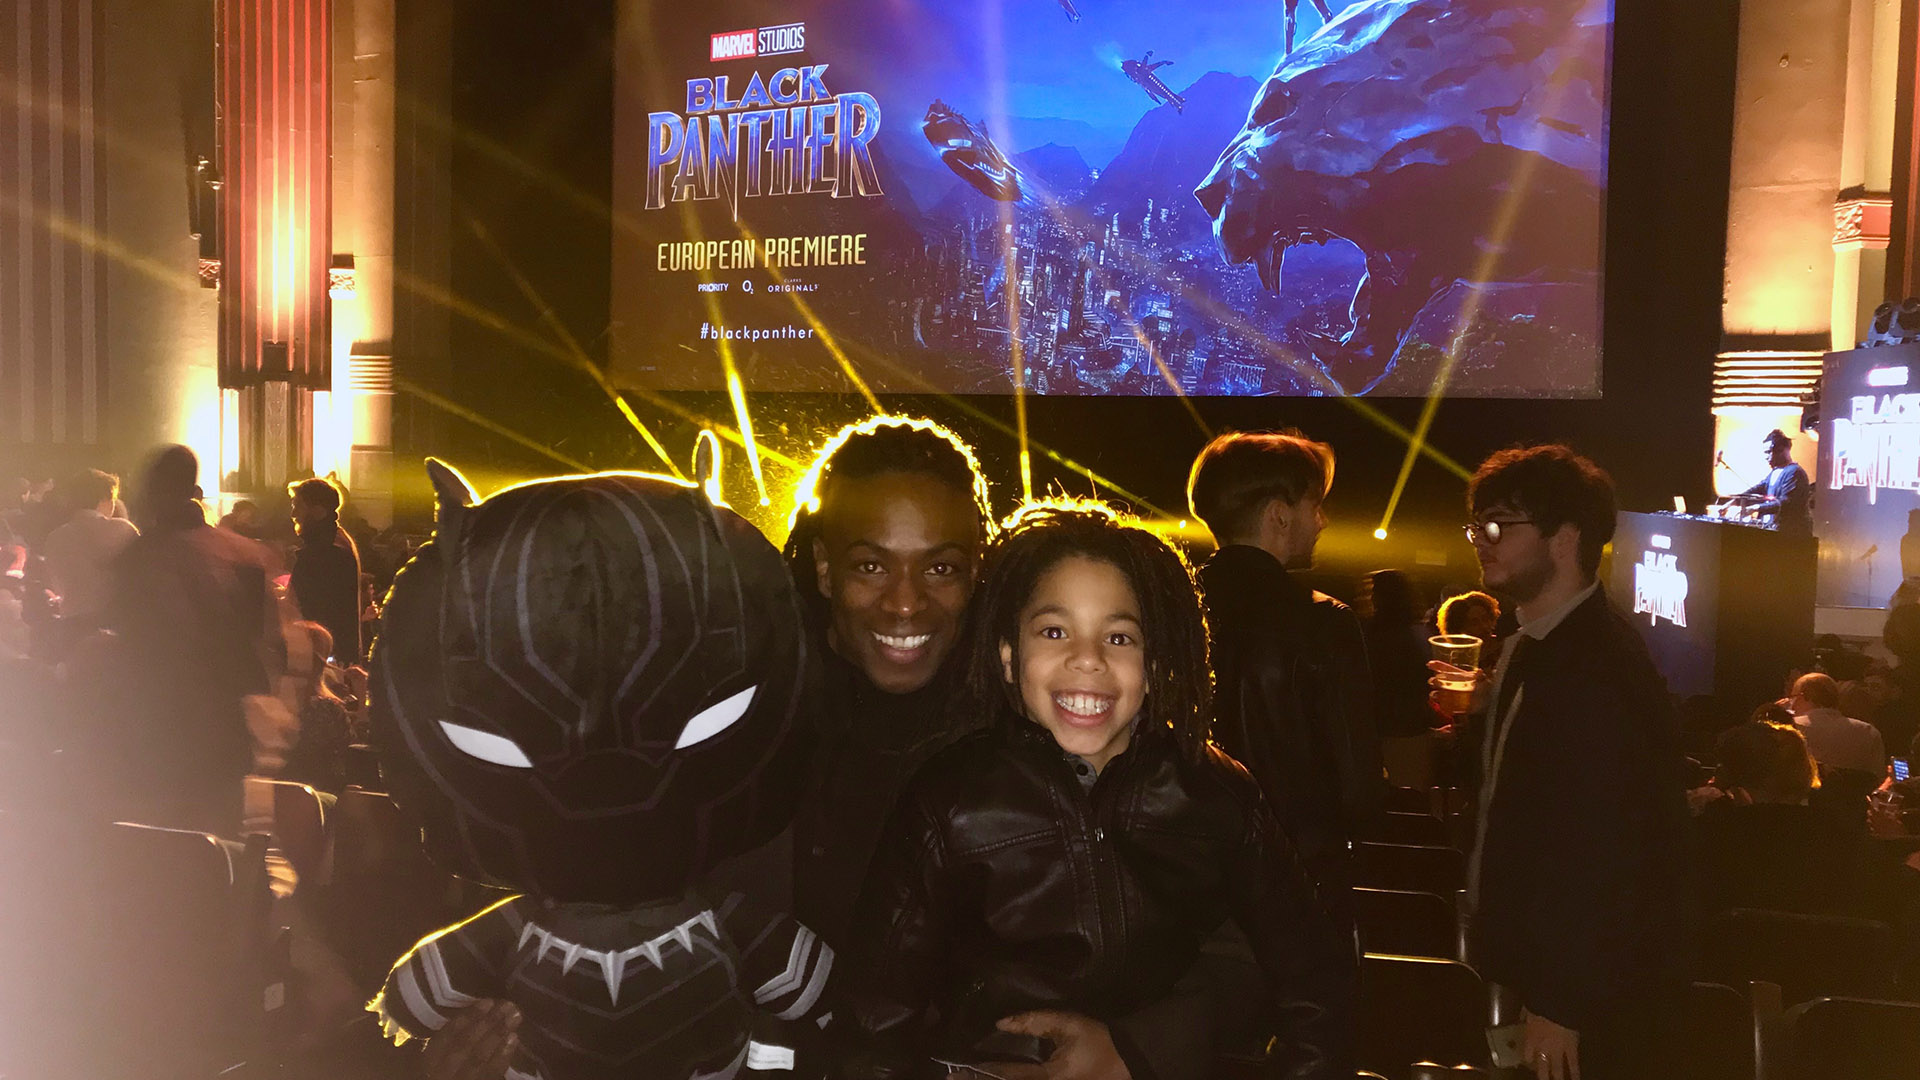 Black Panther - A New Black Role Model